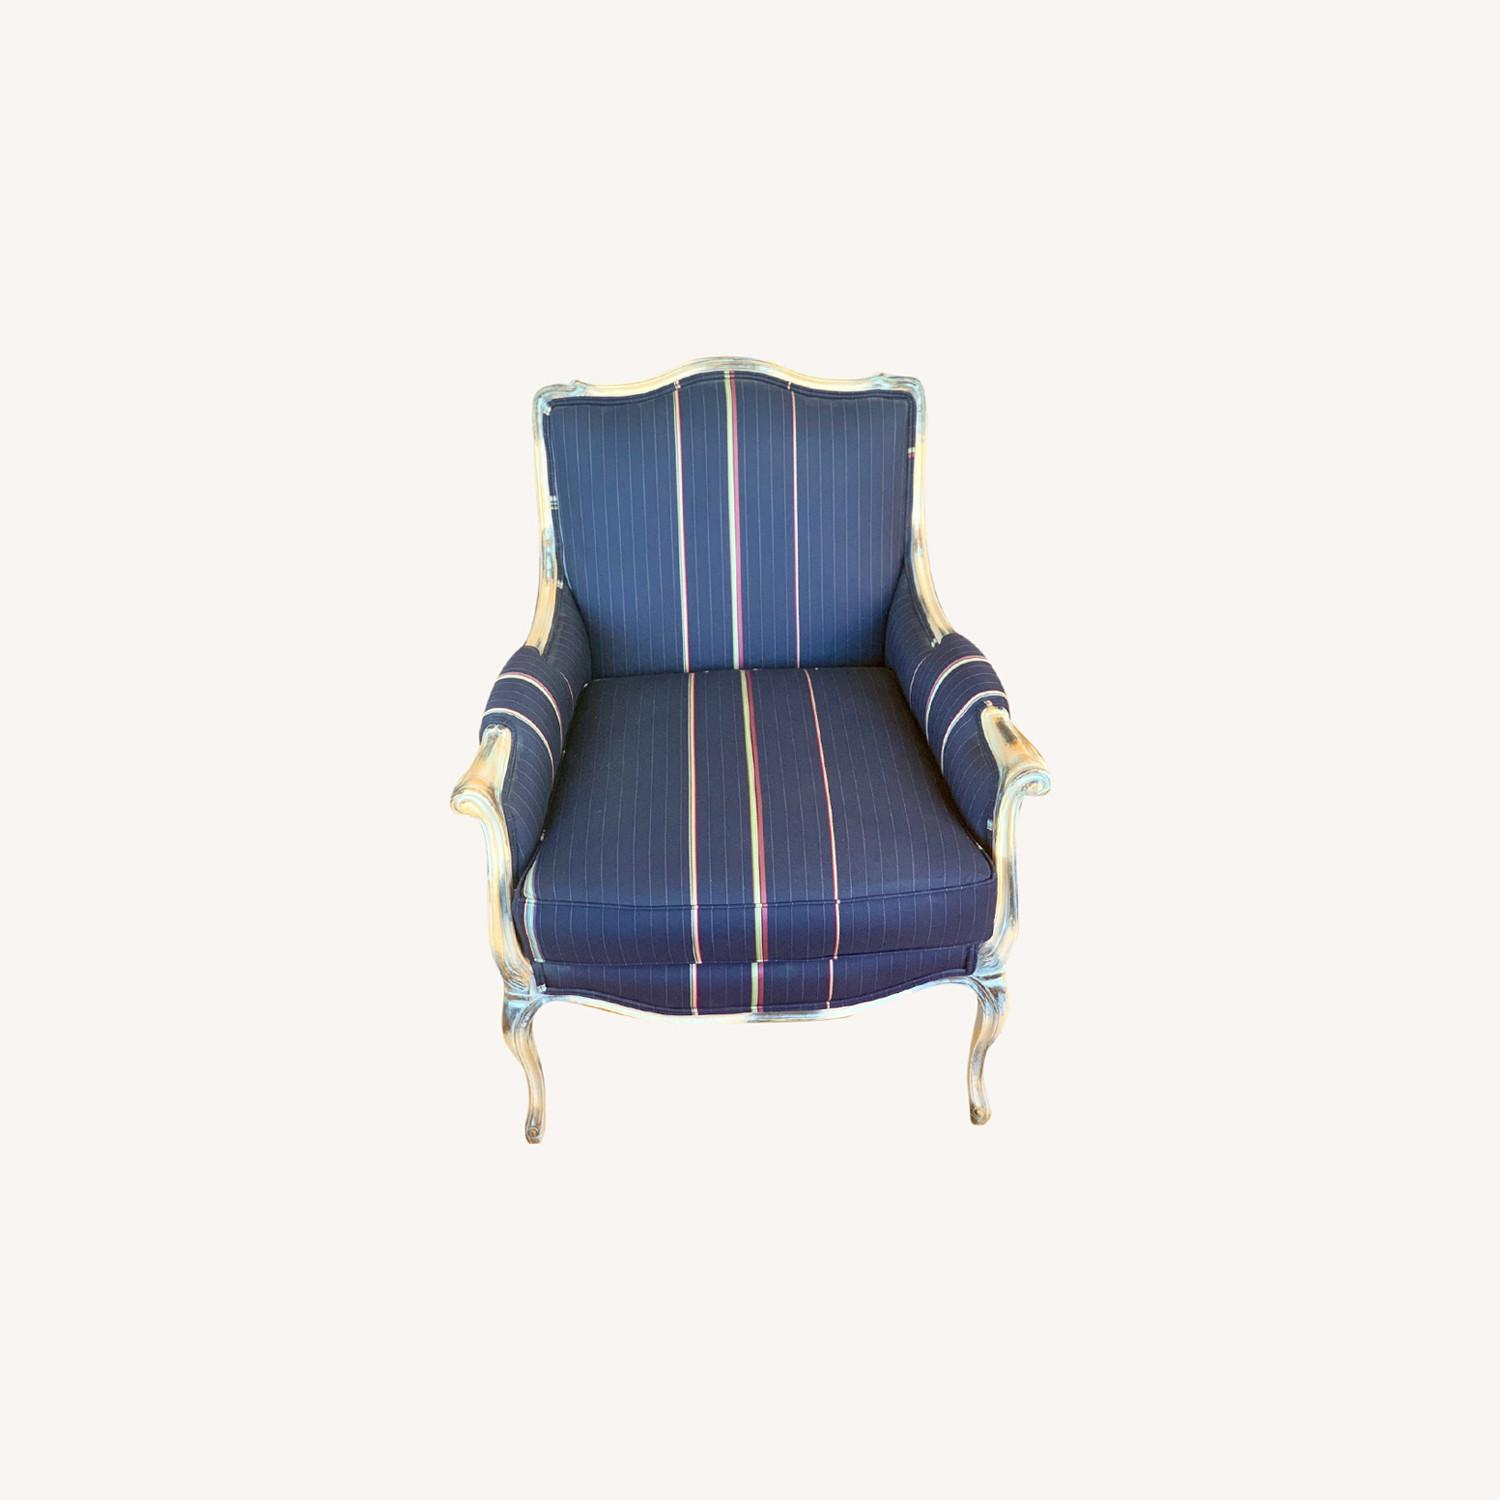 Anthropologie Paul Smith Collection Armchair - image-0